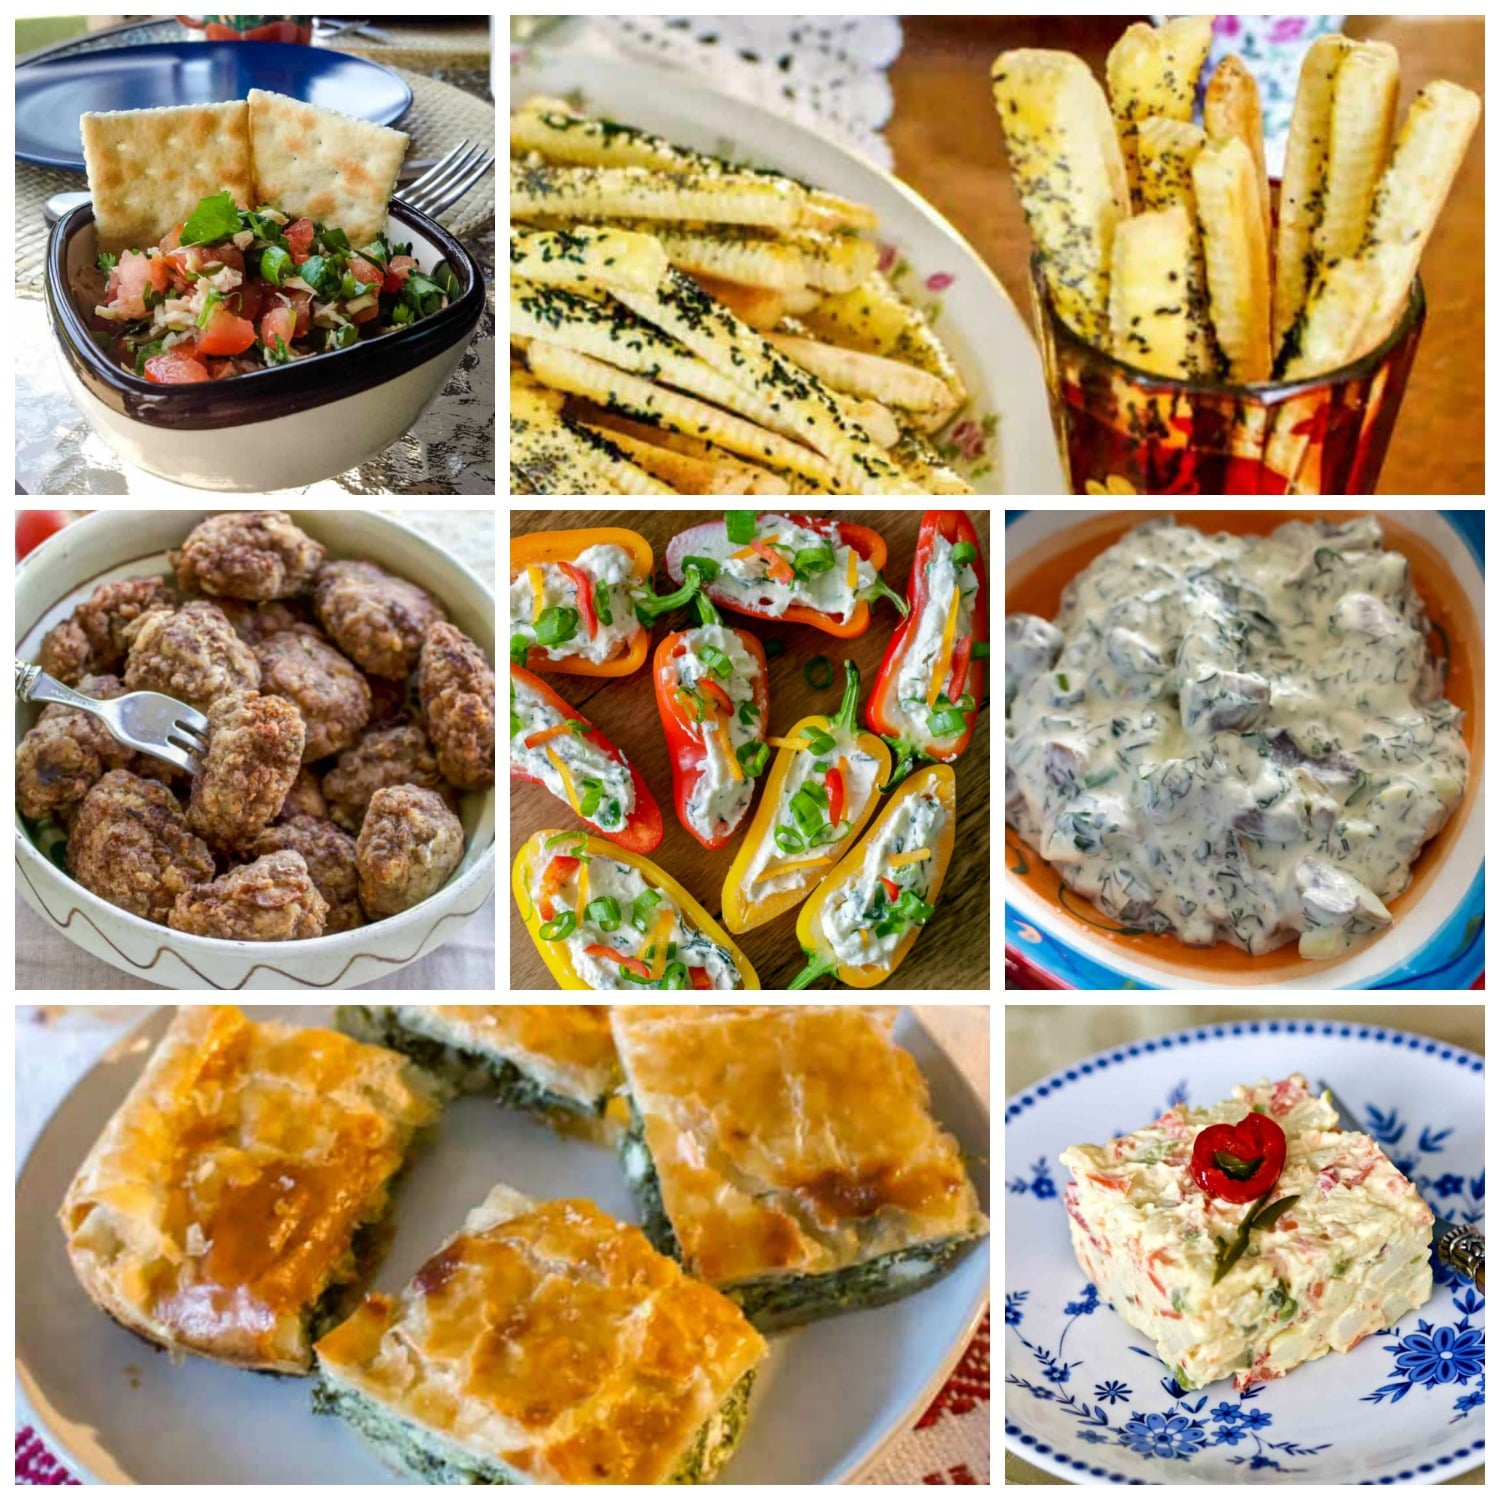 Super Bowl Appetizer Recipes - a collection of recipes designed to be enjoyed with family and friends.